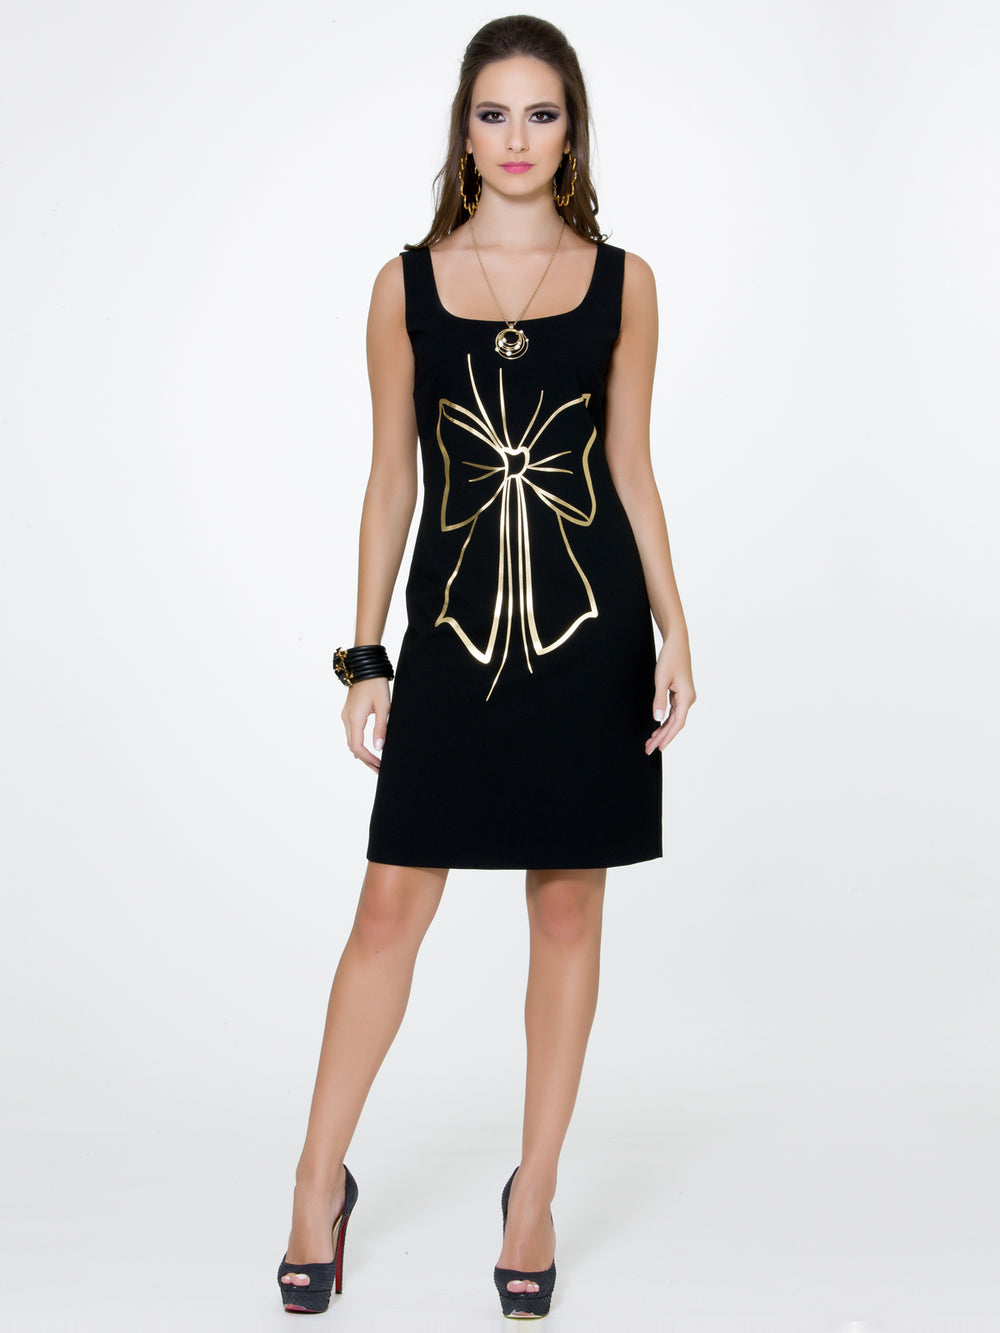 Black Bow Print Dress, BOUTIQUE MOSCHINO - elilhaam.com